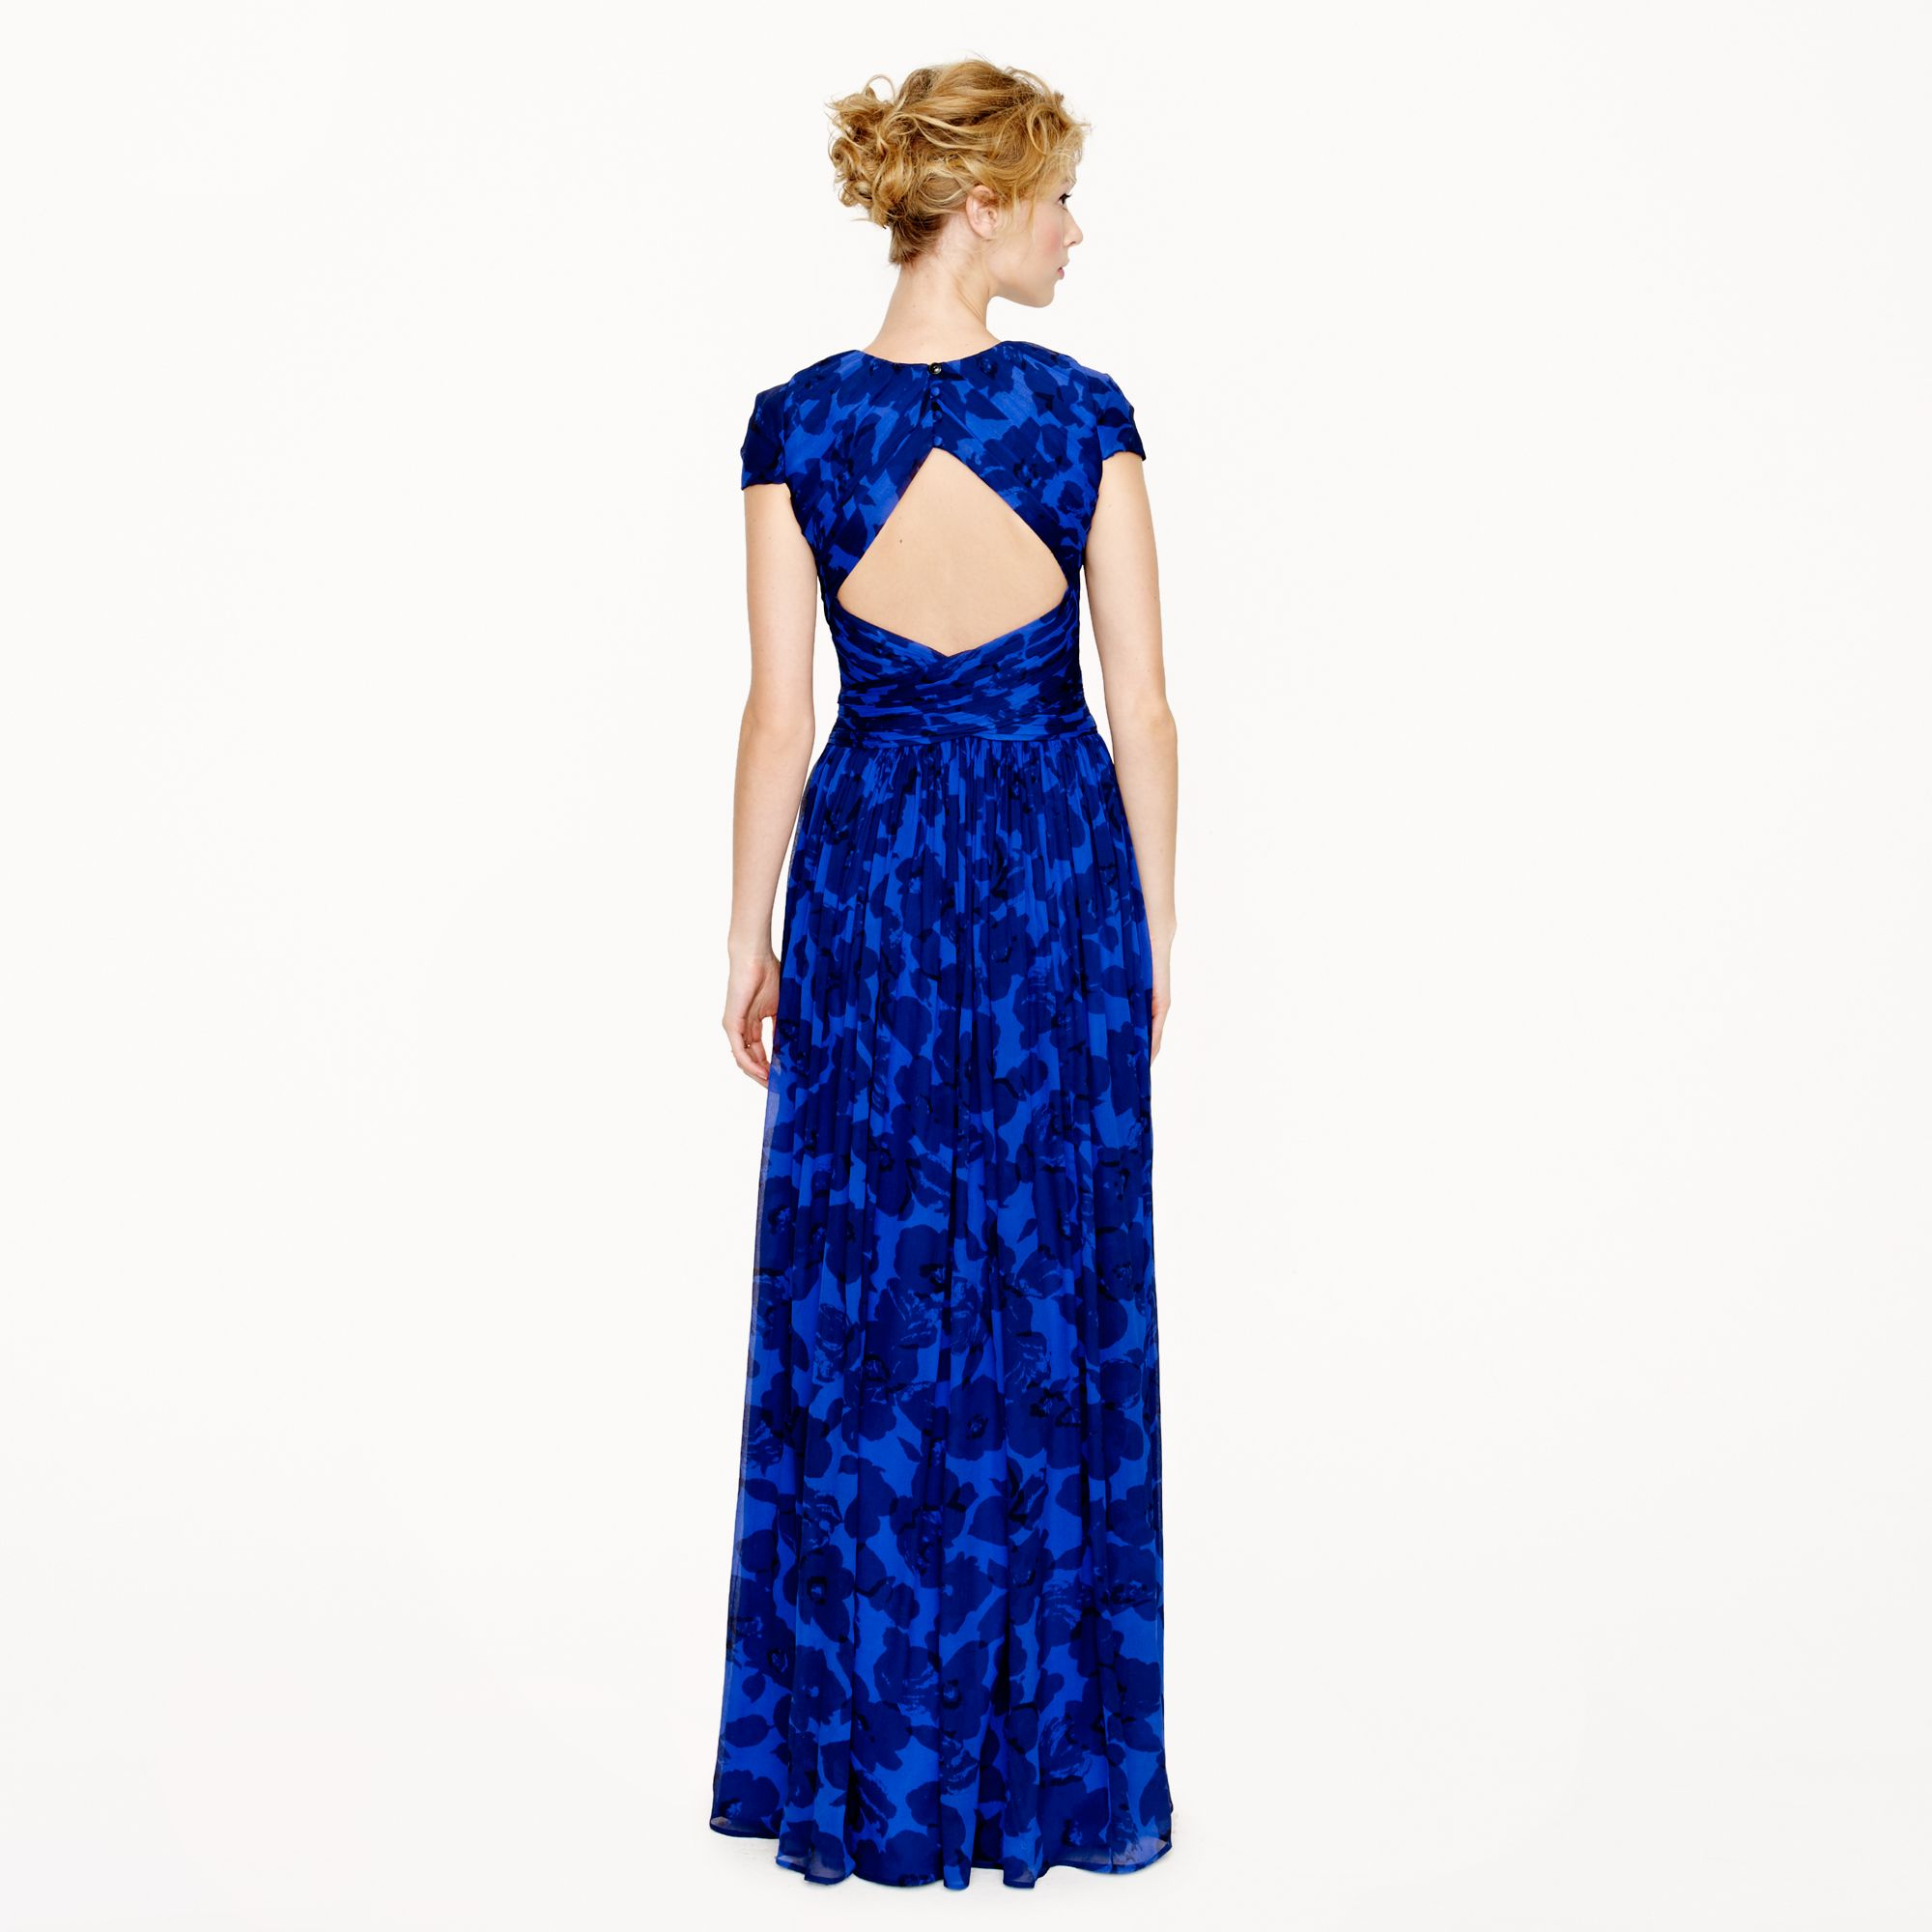 Jew collection dauphine gown in watercolor floral in purple lyst gallery ombrellifo Gallery